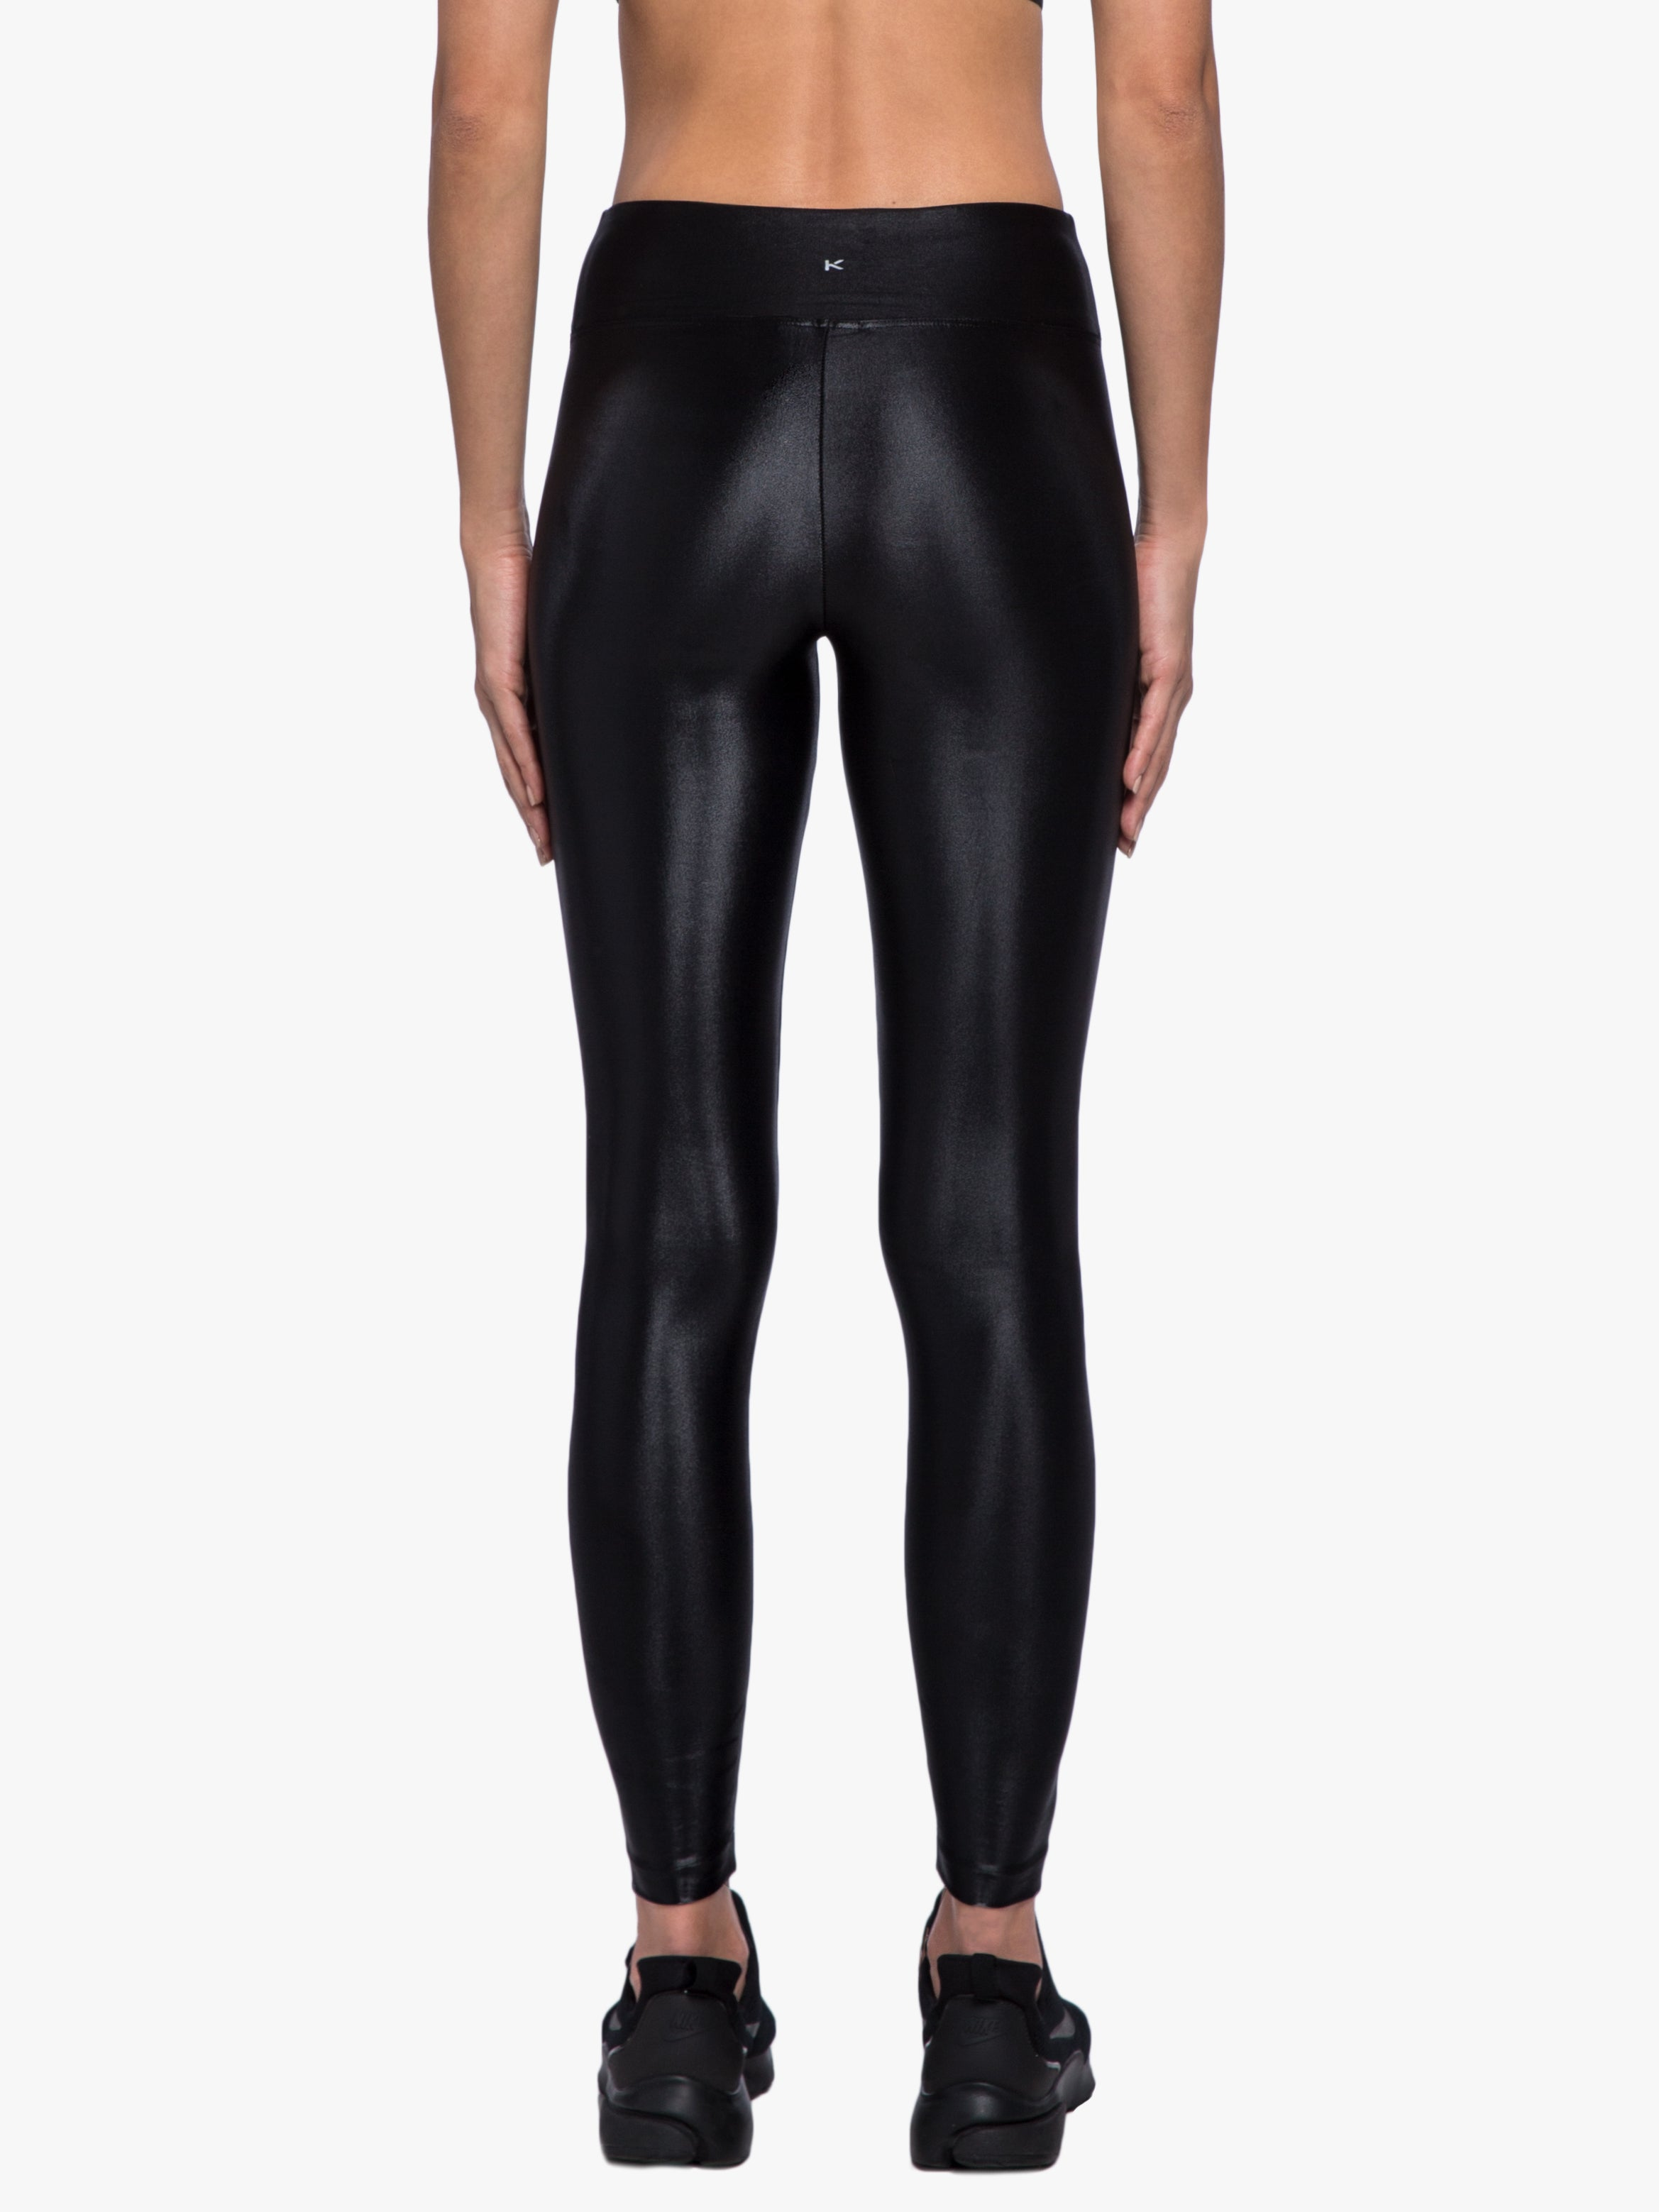 One Heart Lustrous High Rise Legging - Black